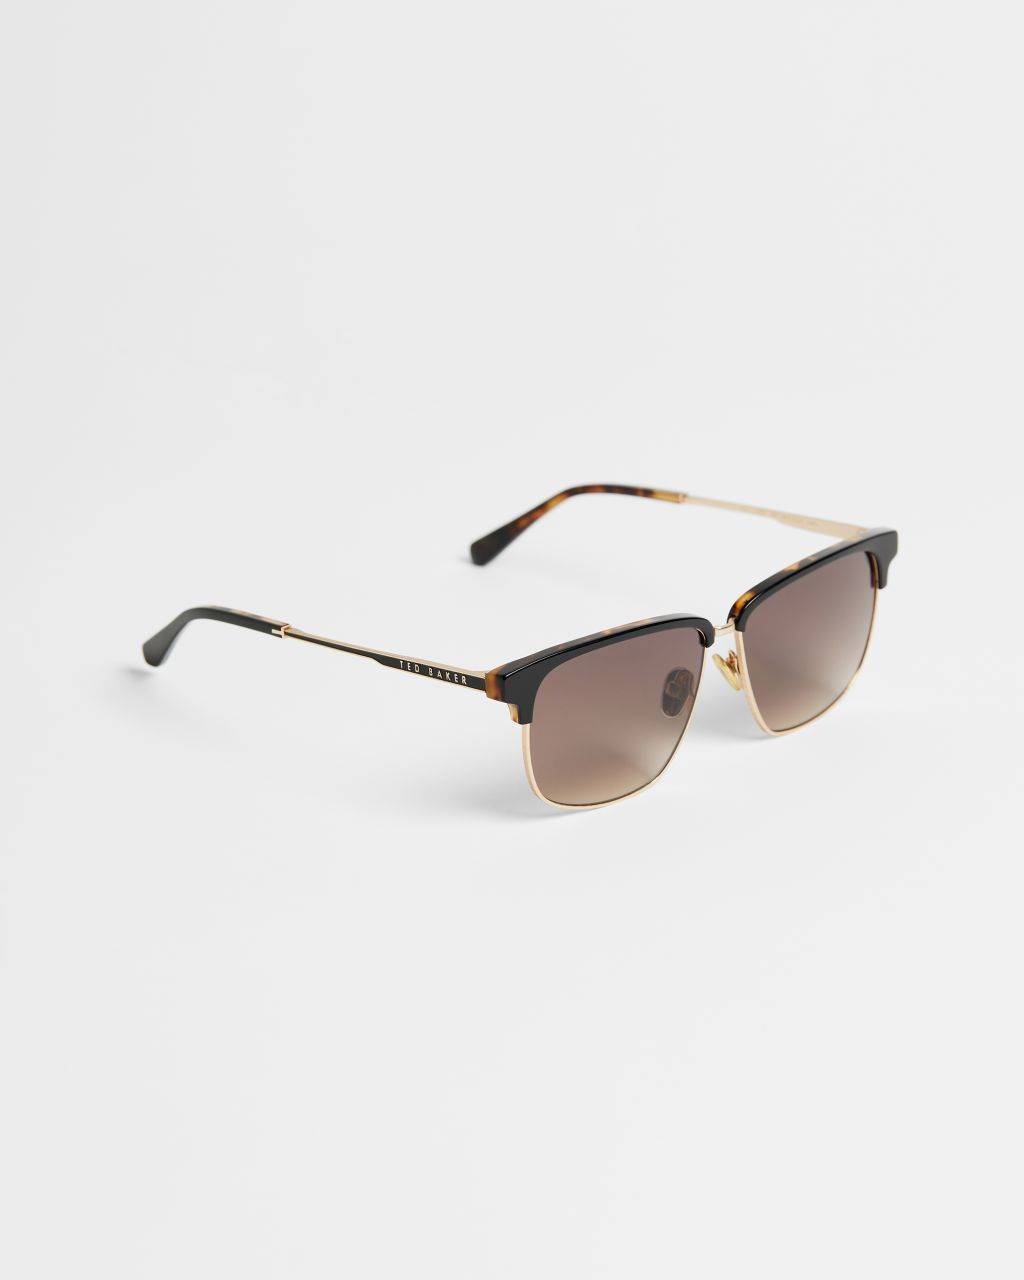 Ted Baker Combination Rectangle Sunglasses  - Black - Size: One Size